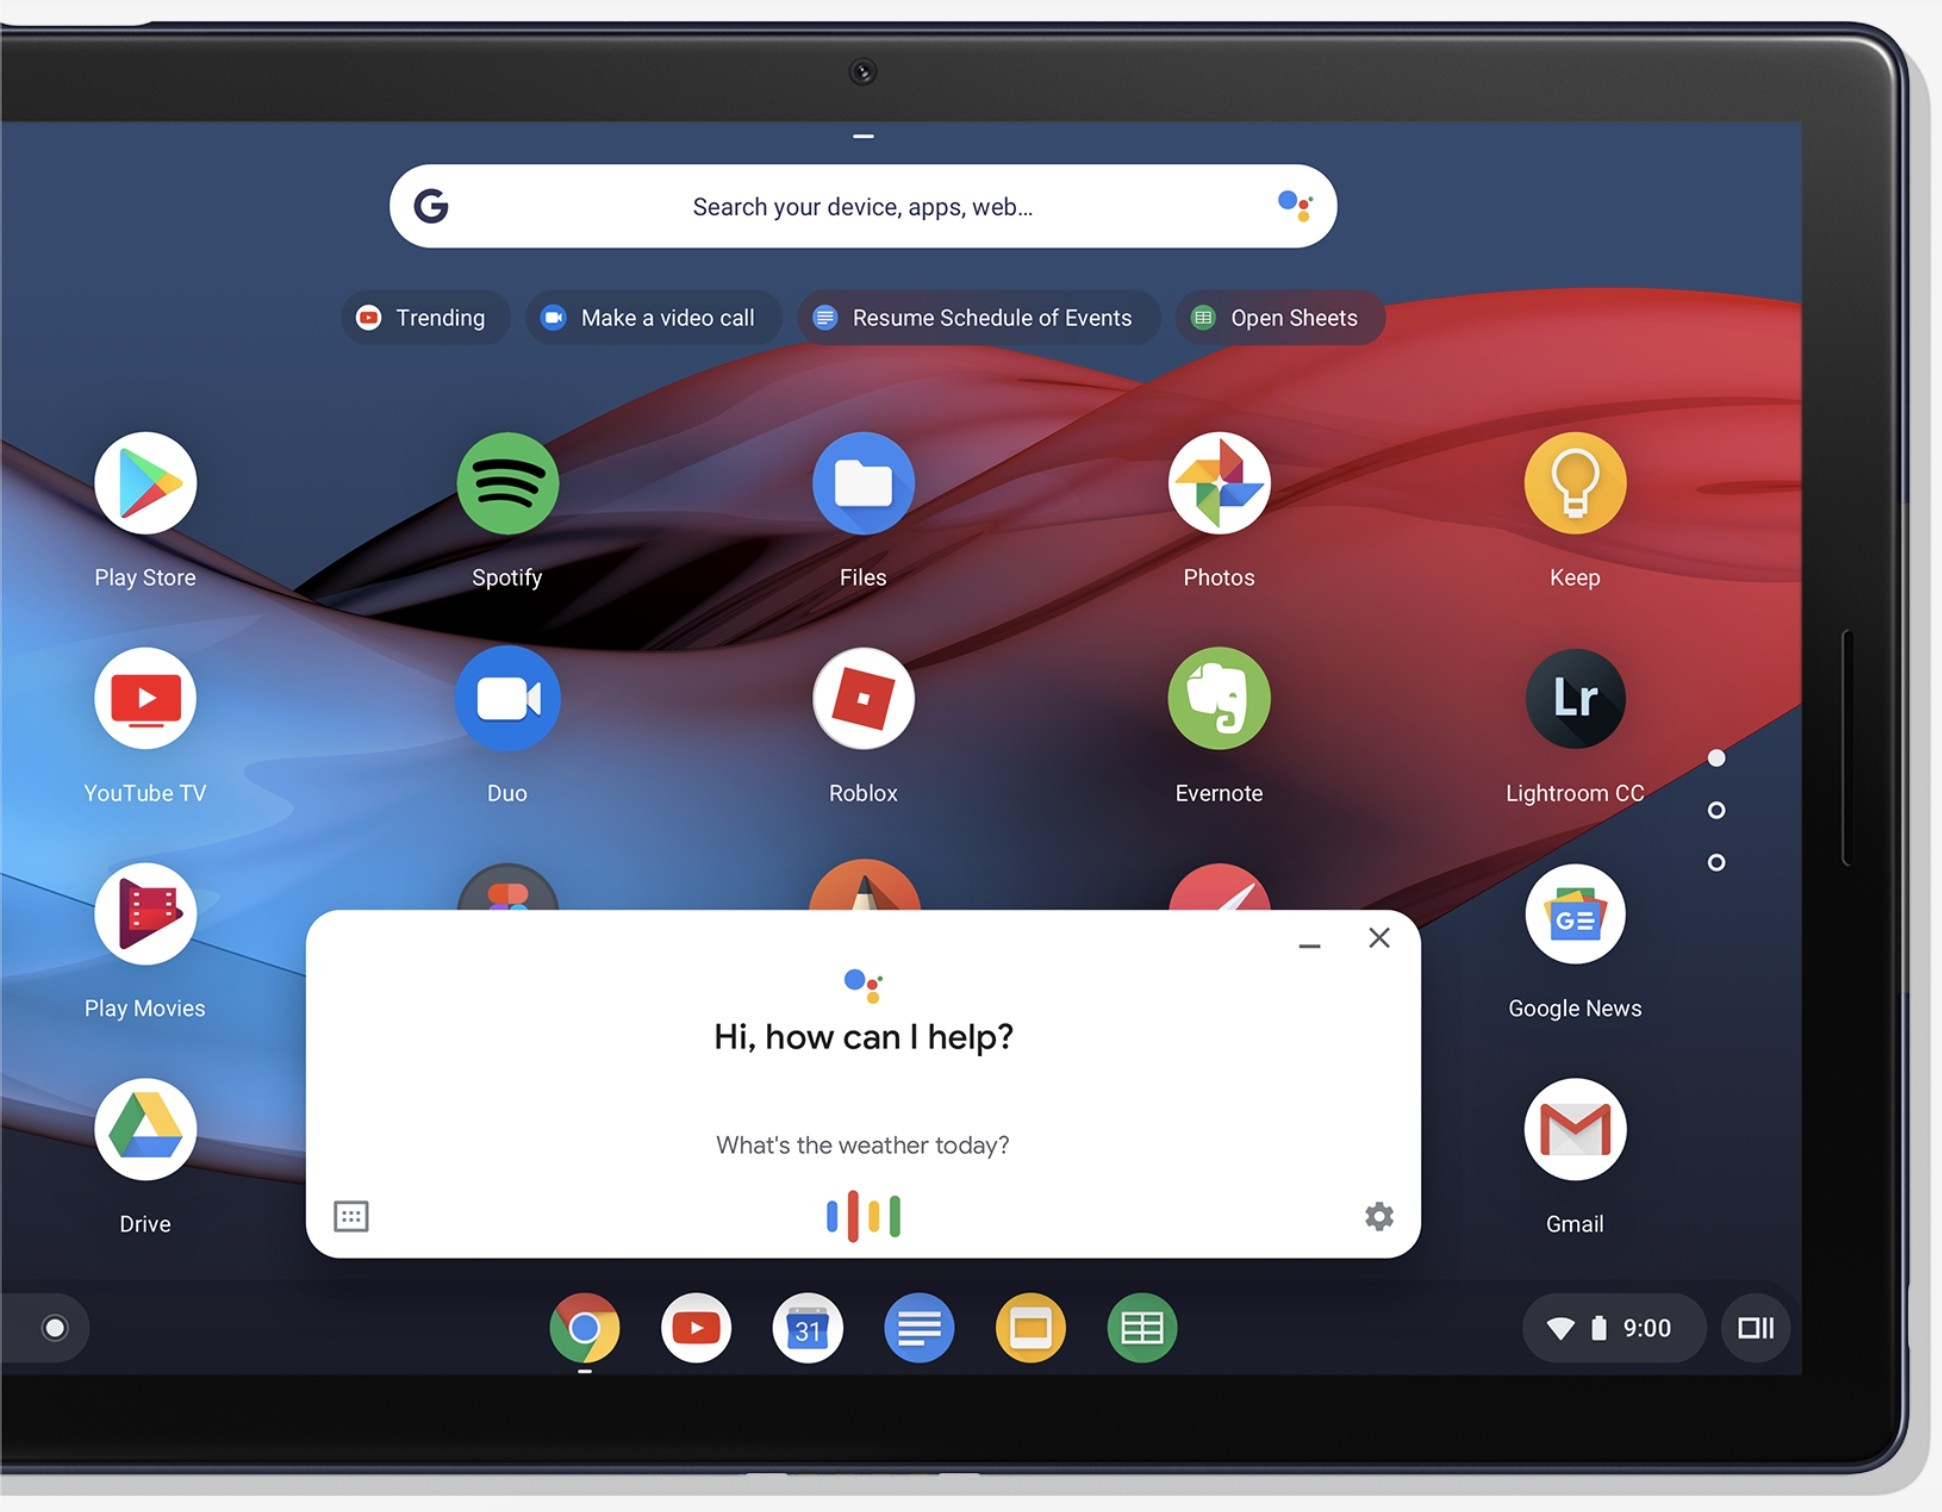 Google Releases Chrome OS 75 to Let Linux Apps Access